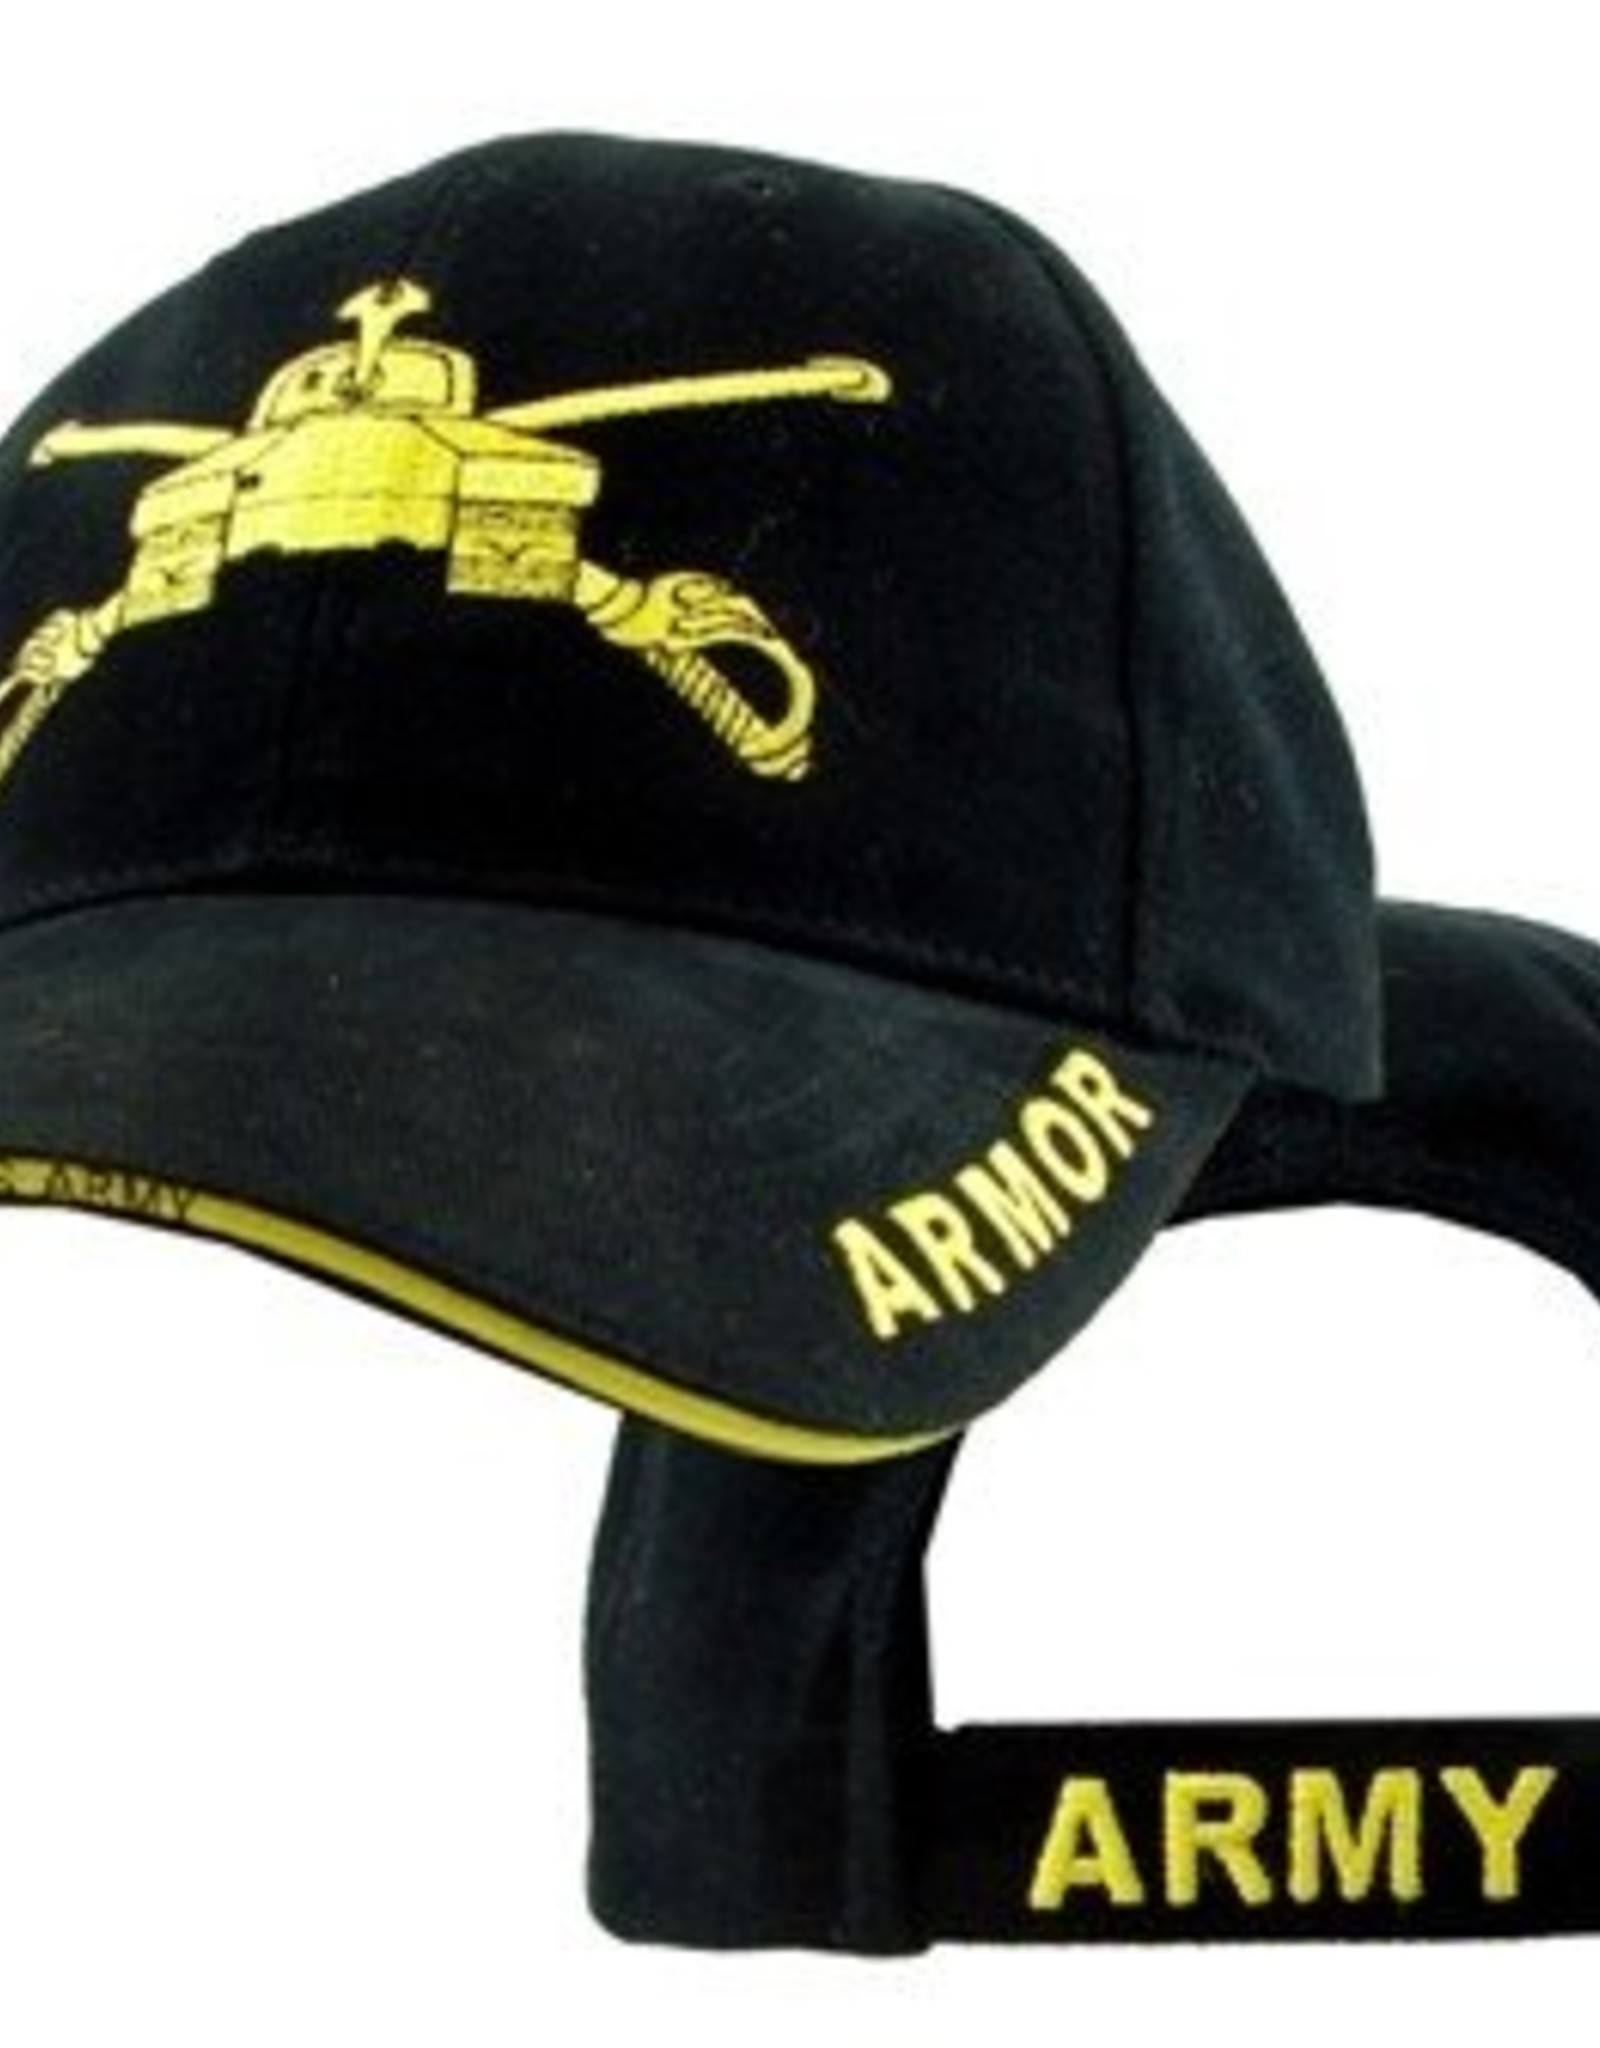 MidMil Army Armor Hat with Emblem and Sandwich Bill Black